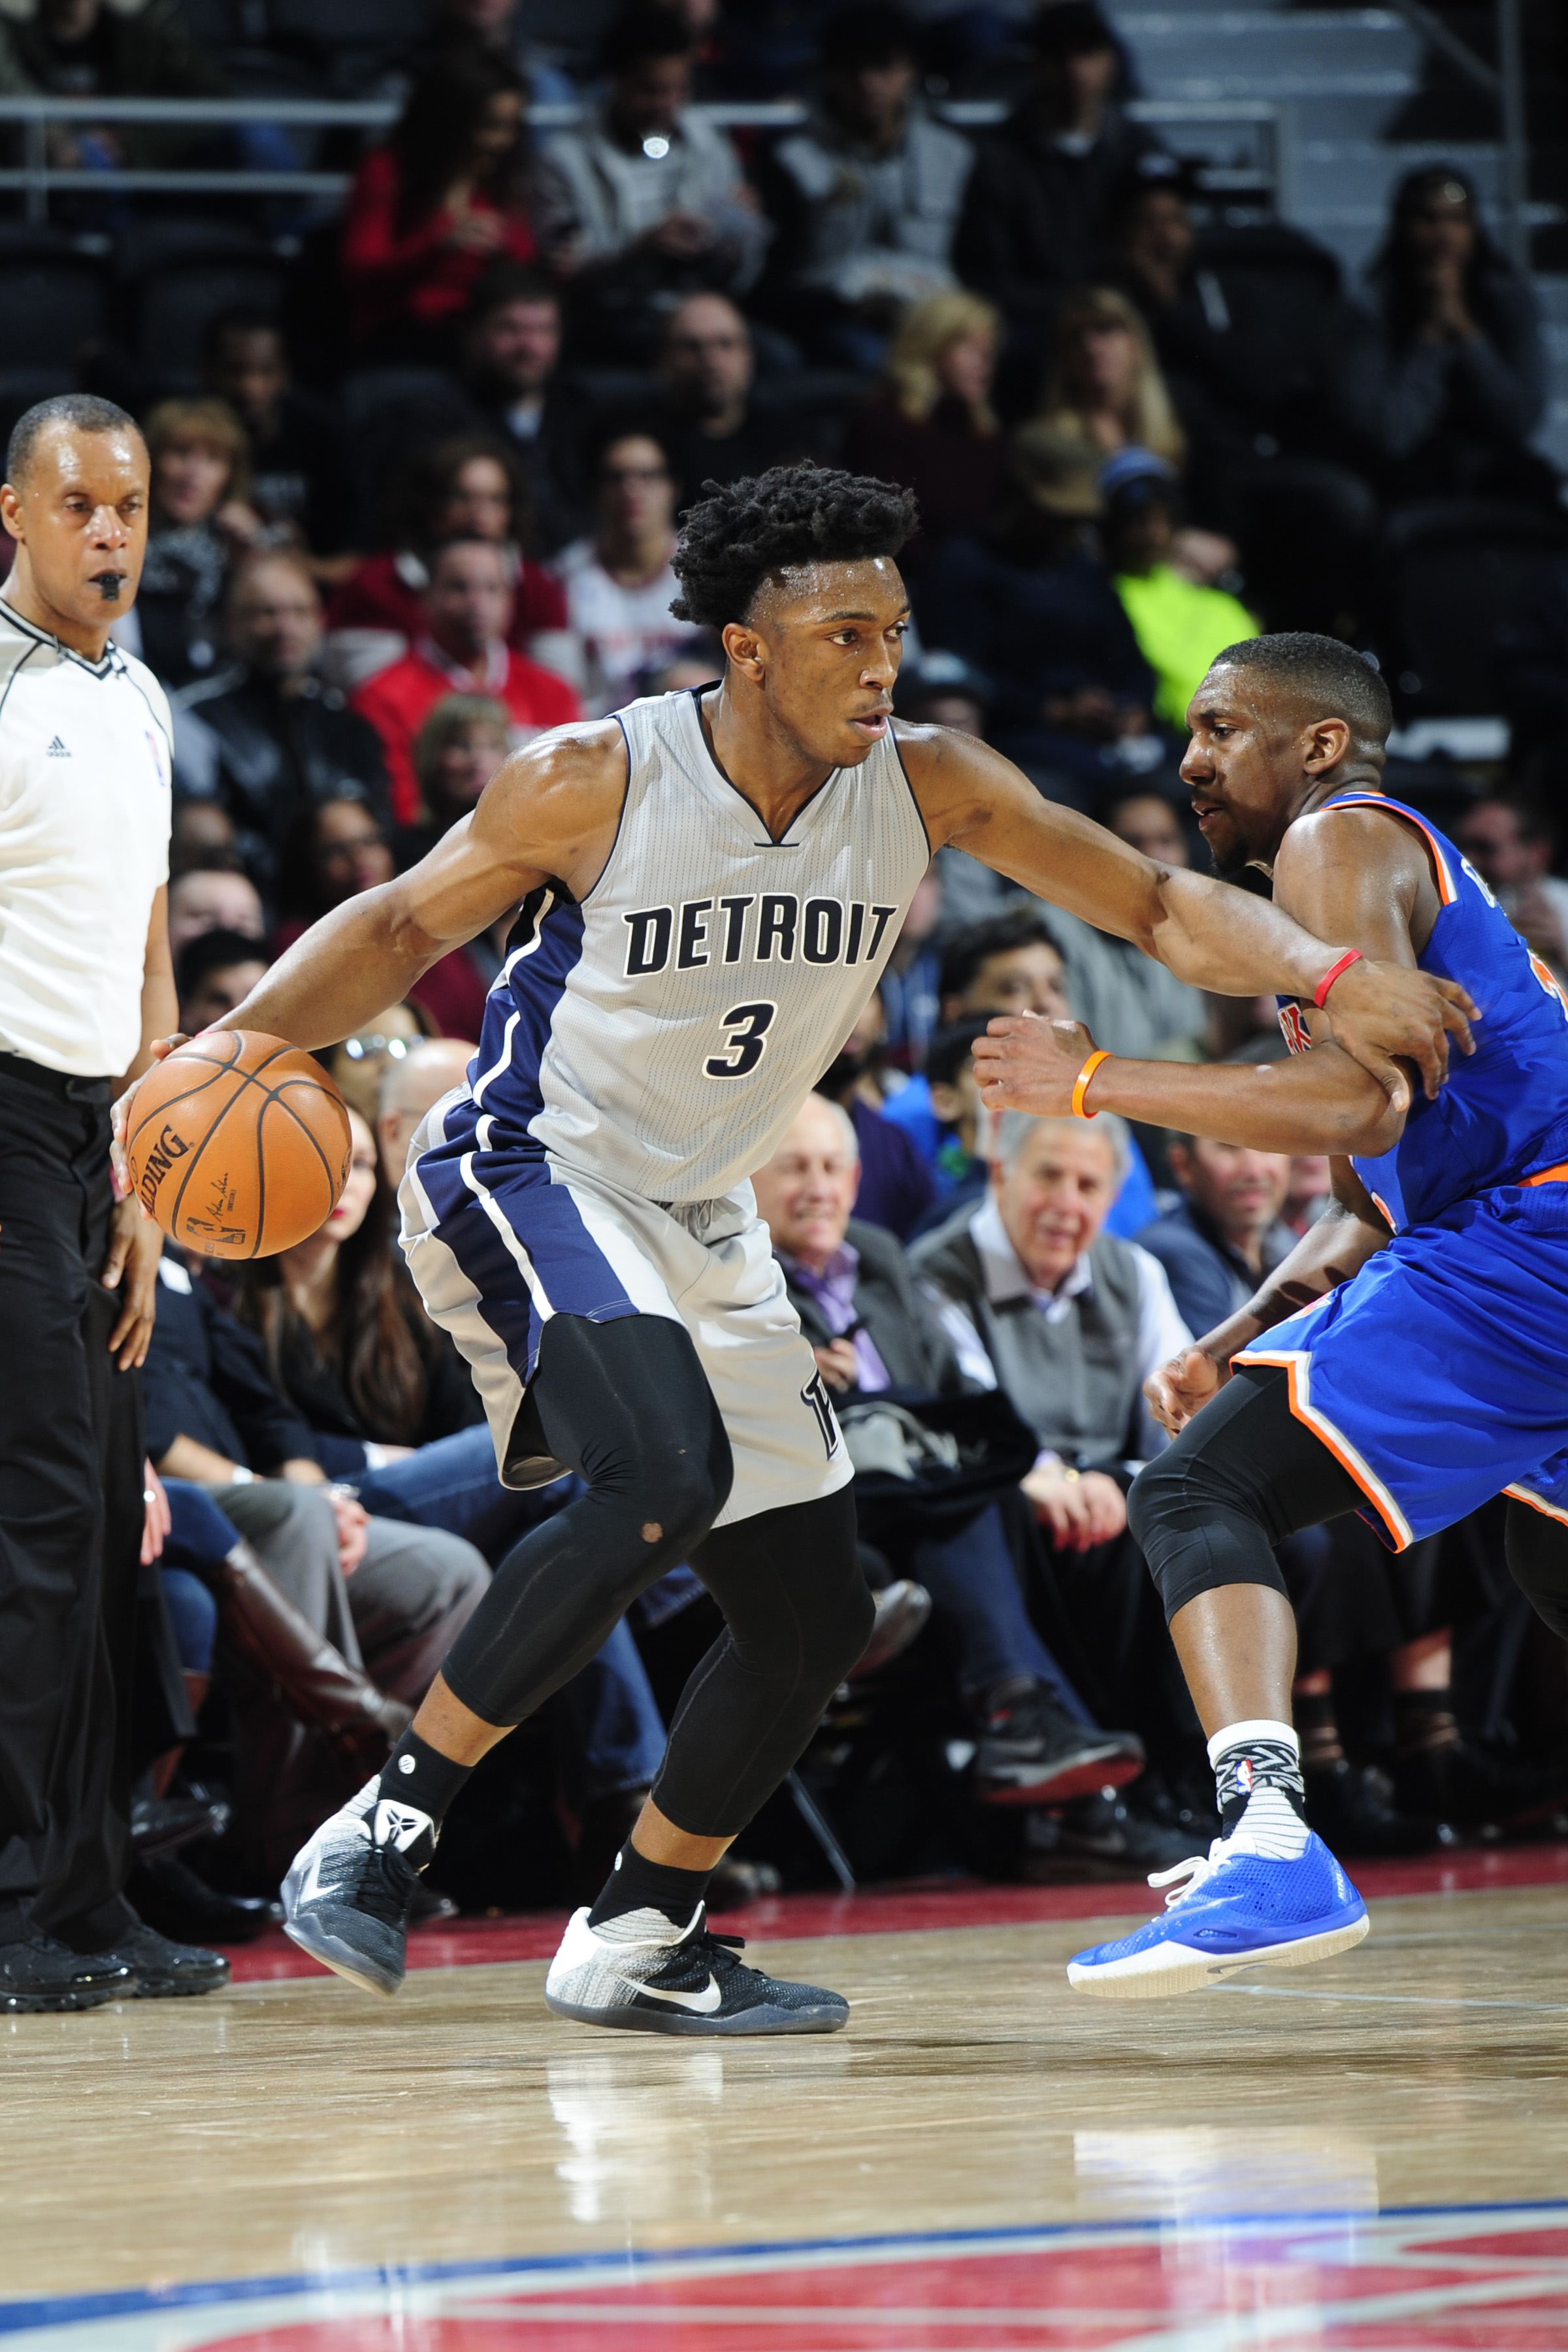 AUBURN HILLS, MI - FEBRUARY 4: Stanley Johnson #3 of the Detroit Pistons handles the ball against the New York Knicks on February 4, 2016 at The Palace of Auburn Hills in Auburn Hills, Michigan. (Photo by Allen Einstein/NBAE via Getty Images)